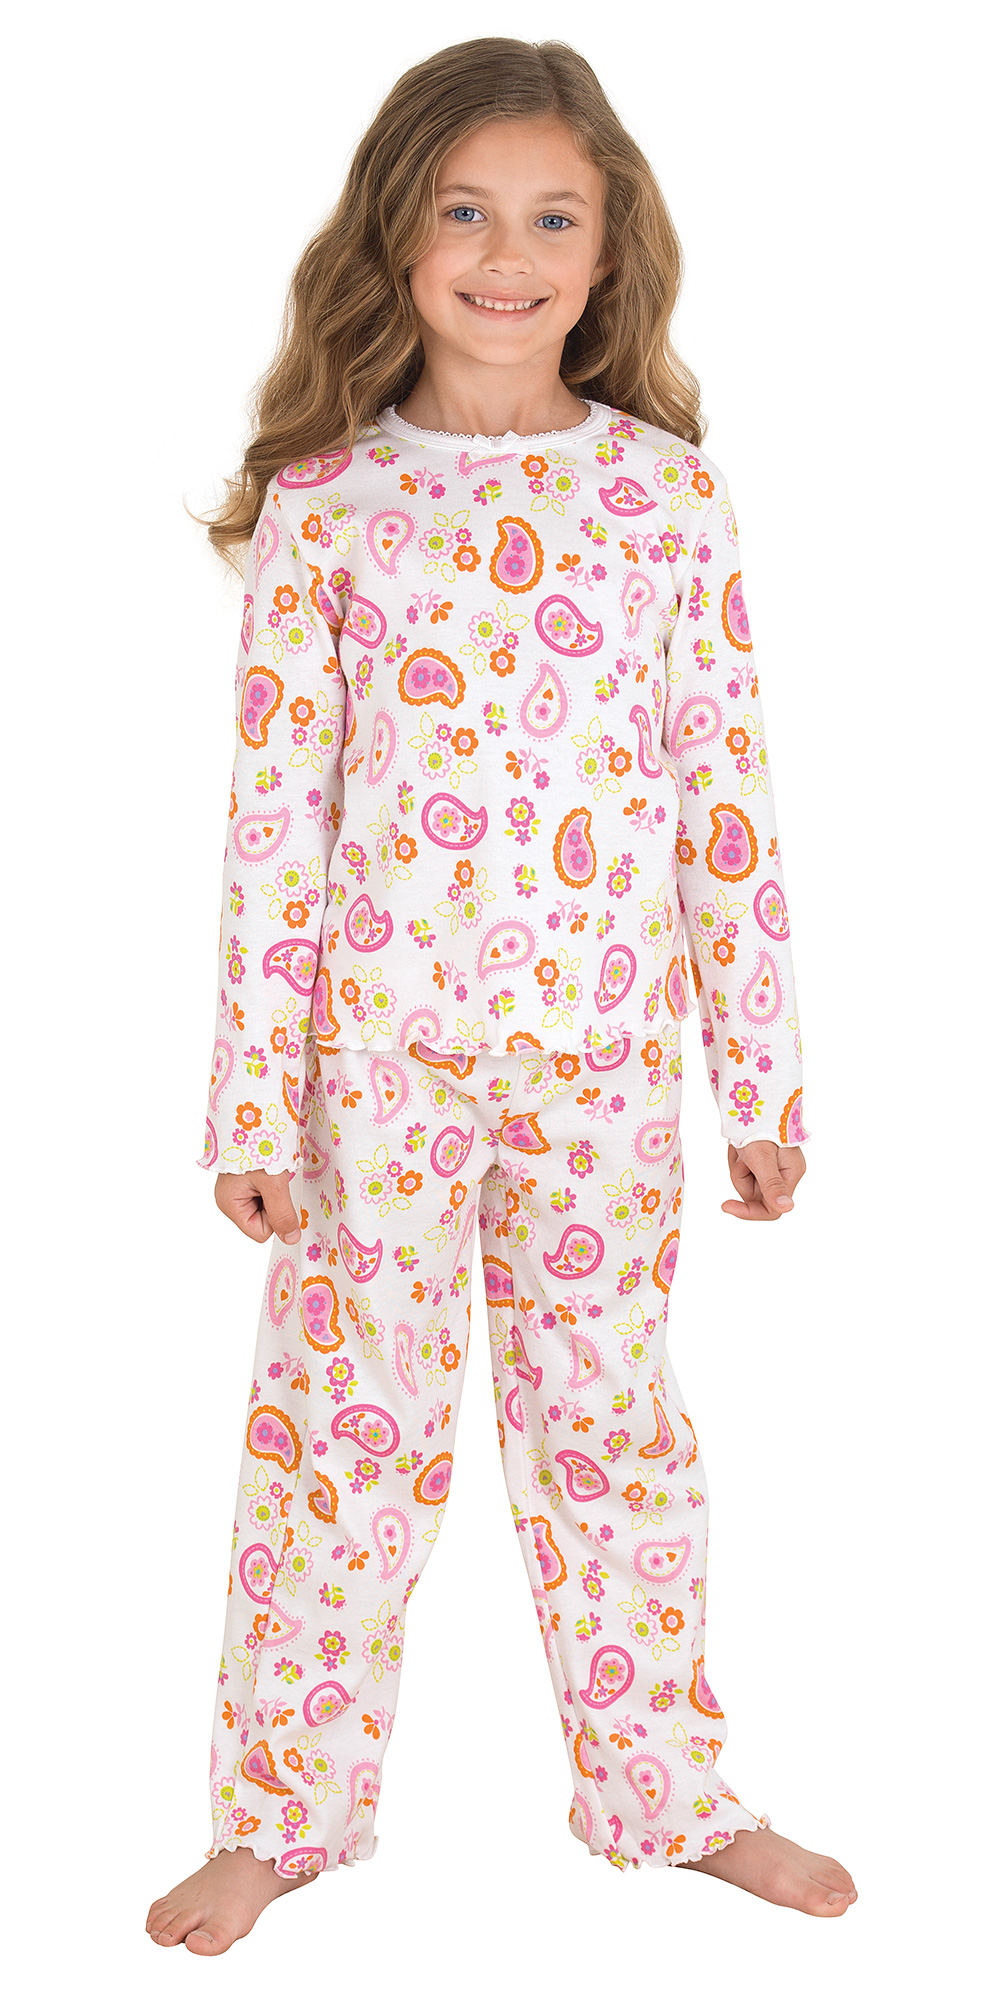 Girls In Pajamas Clipart - Clipart Kid